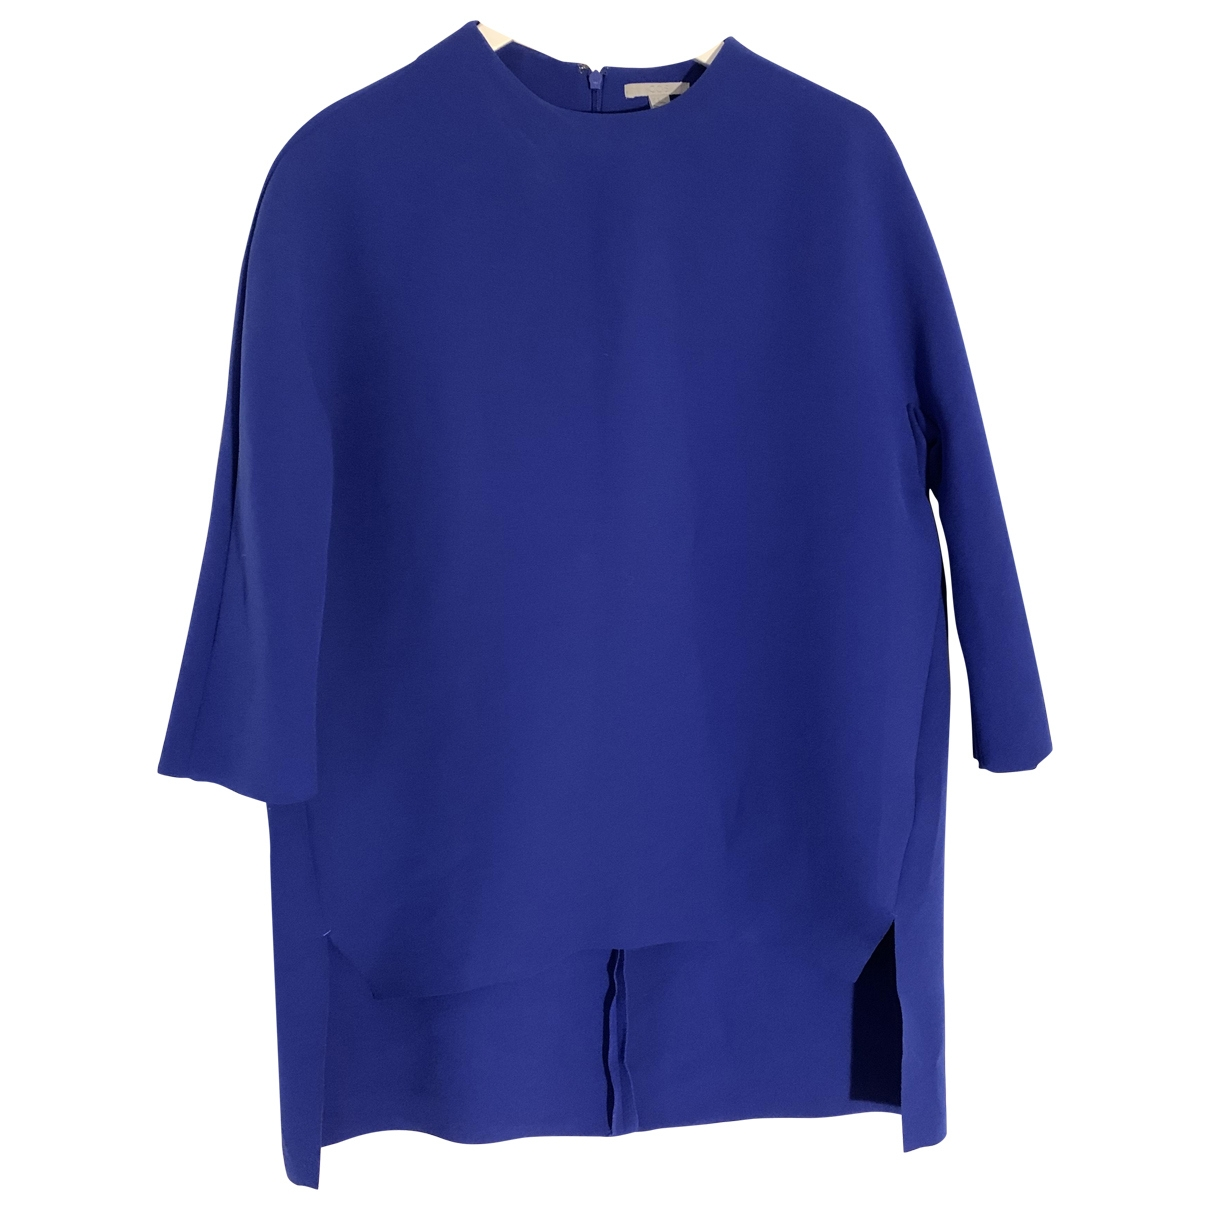 Cos \N Blue  top for Women 10 US